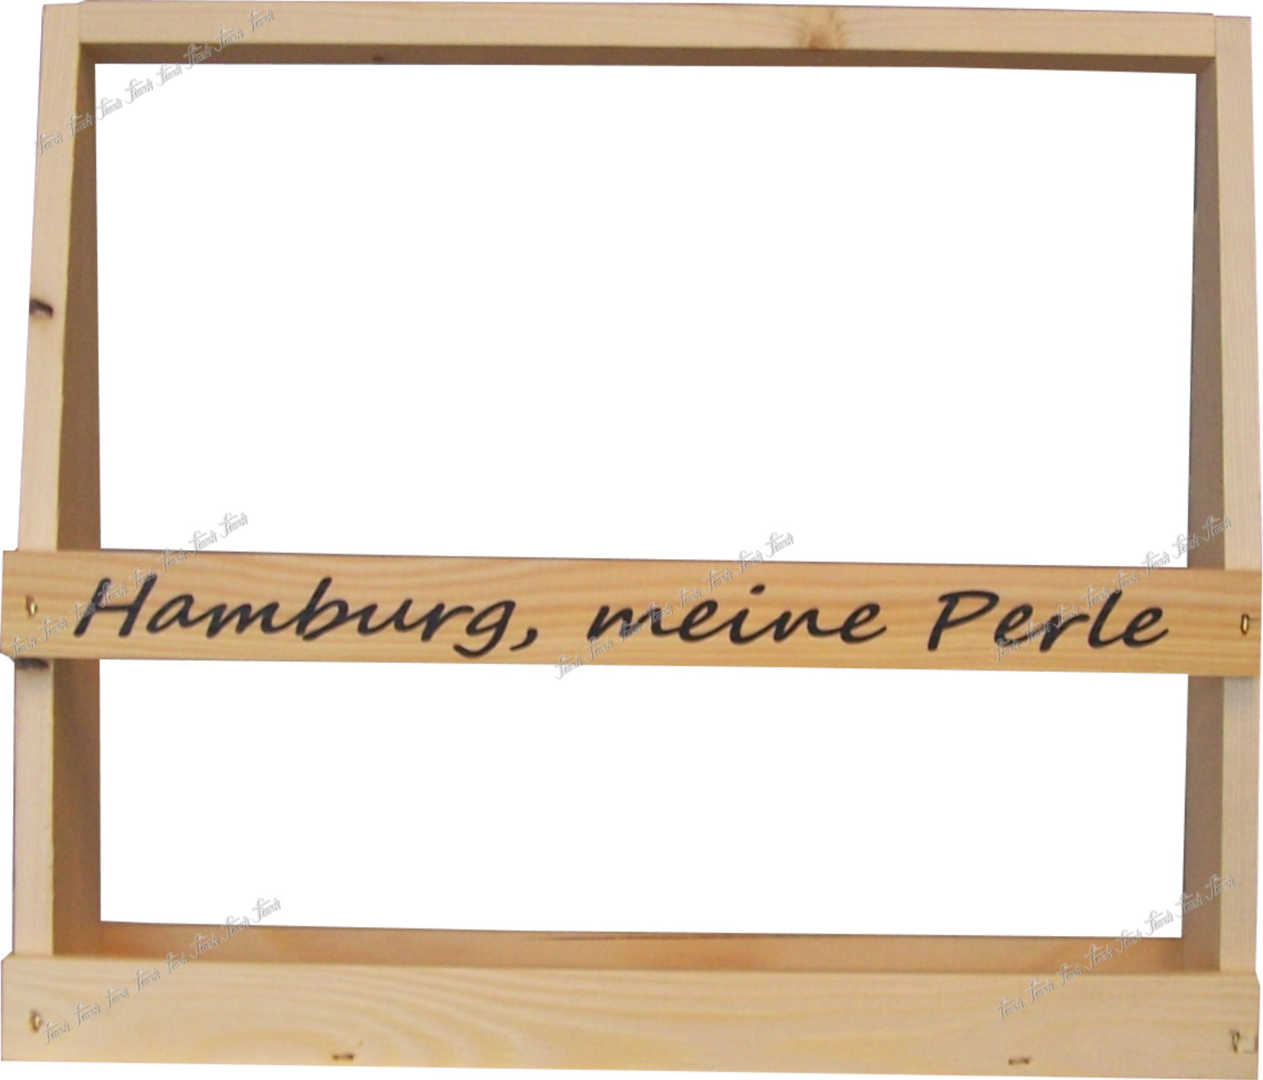 holztr ger 5er hamburg meine perle leer. Black Bedroom Furniture Sets. Home Design Ideas